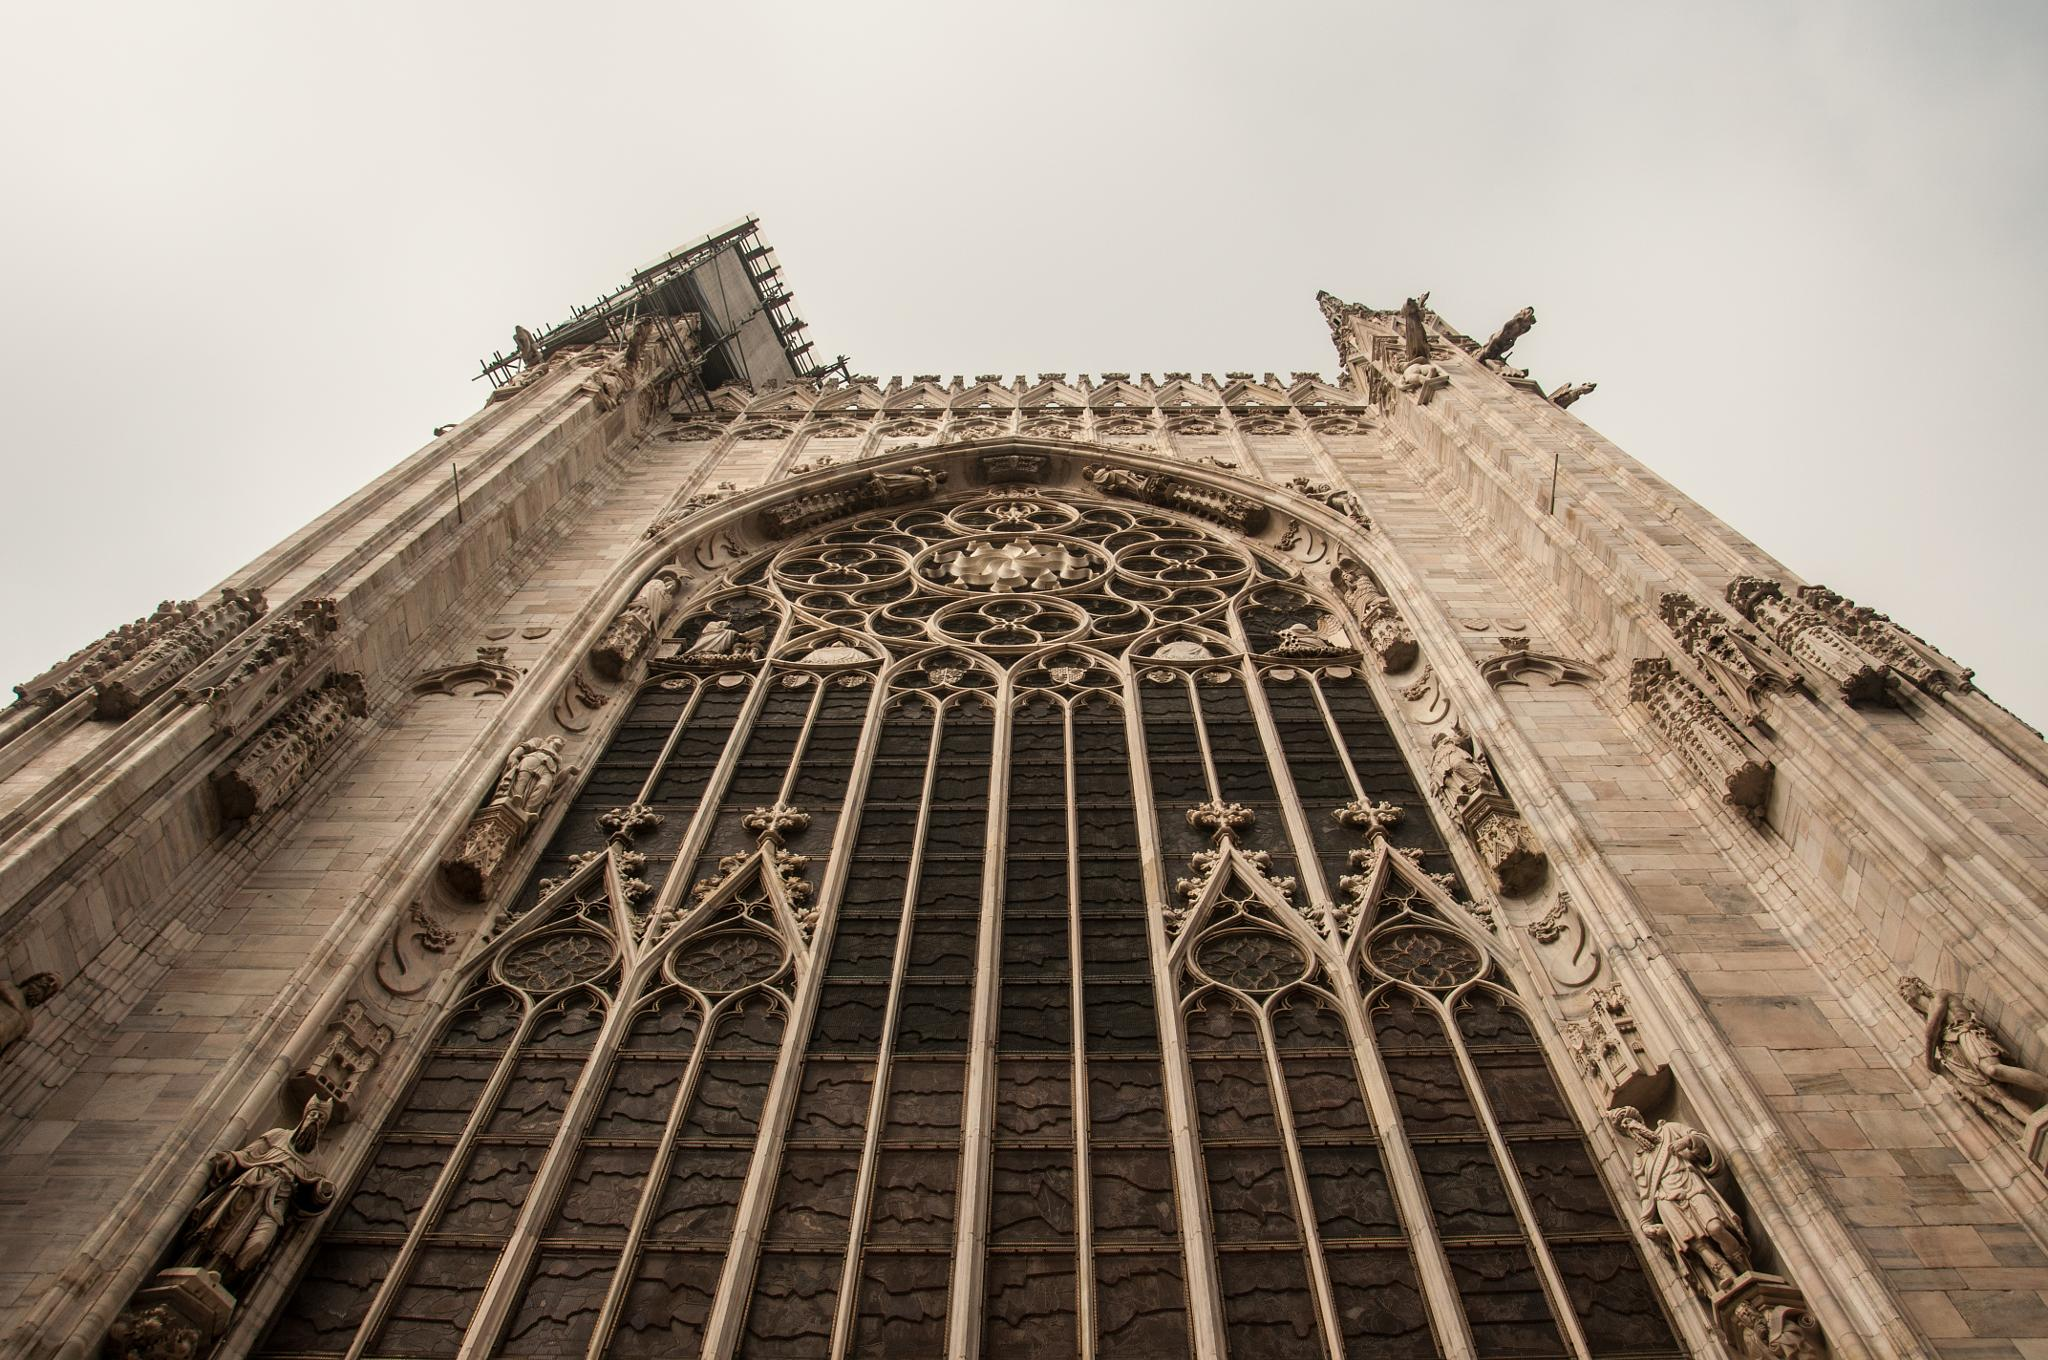 A side of the Duomo by Dimitris Gkoutzamanis